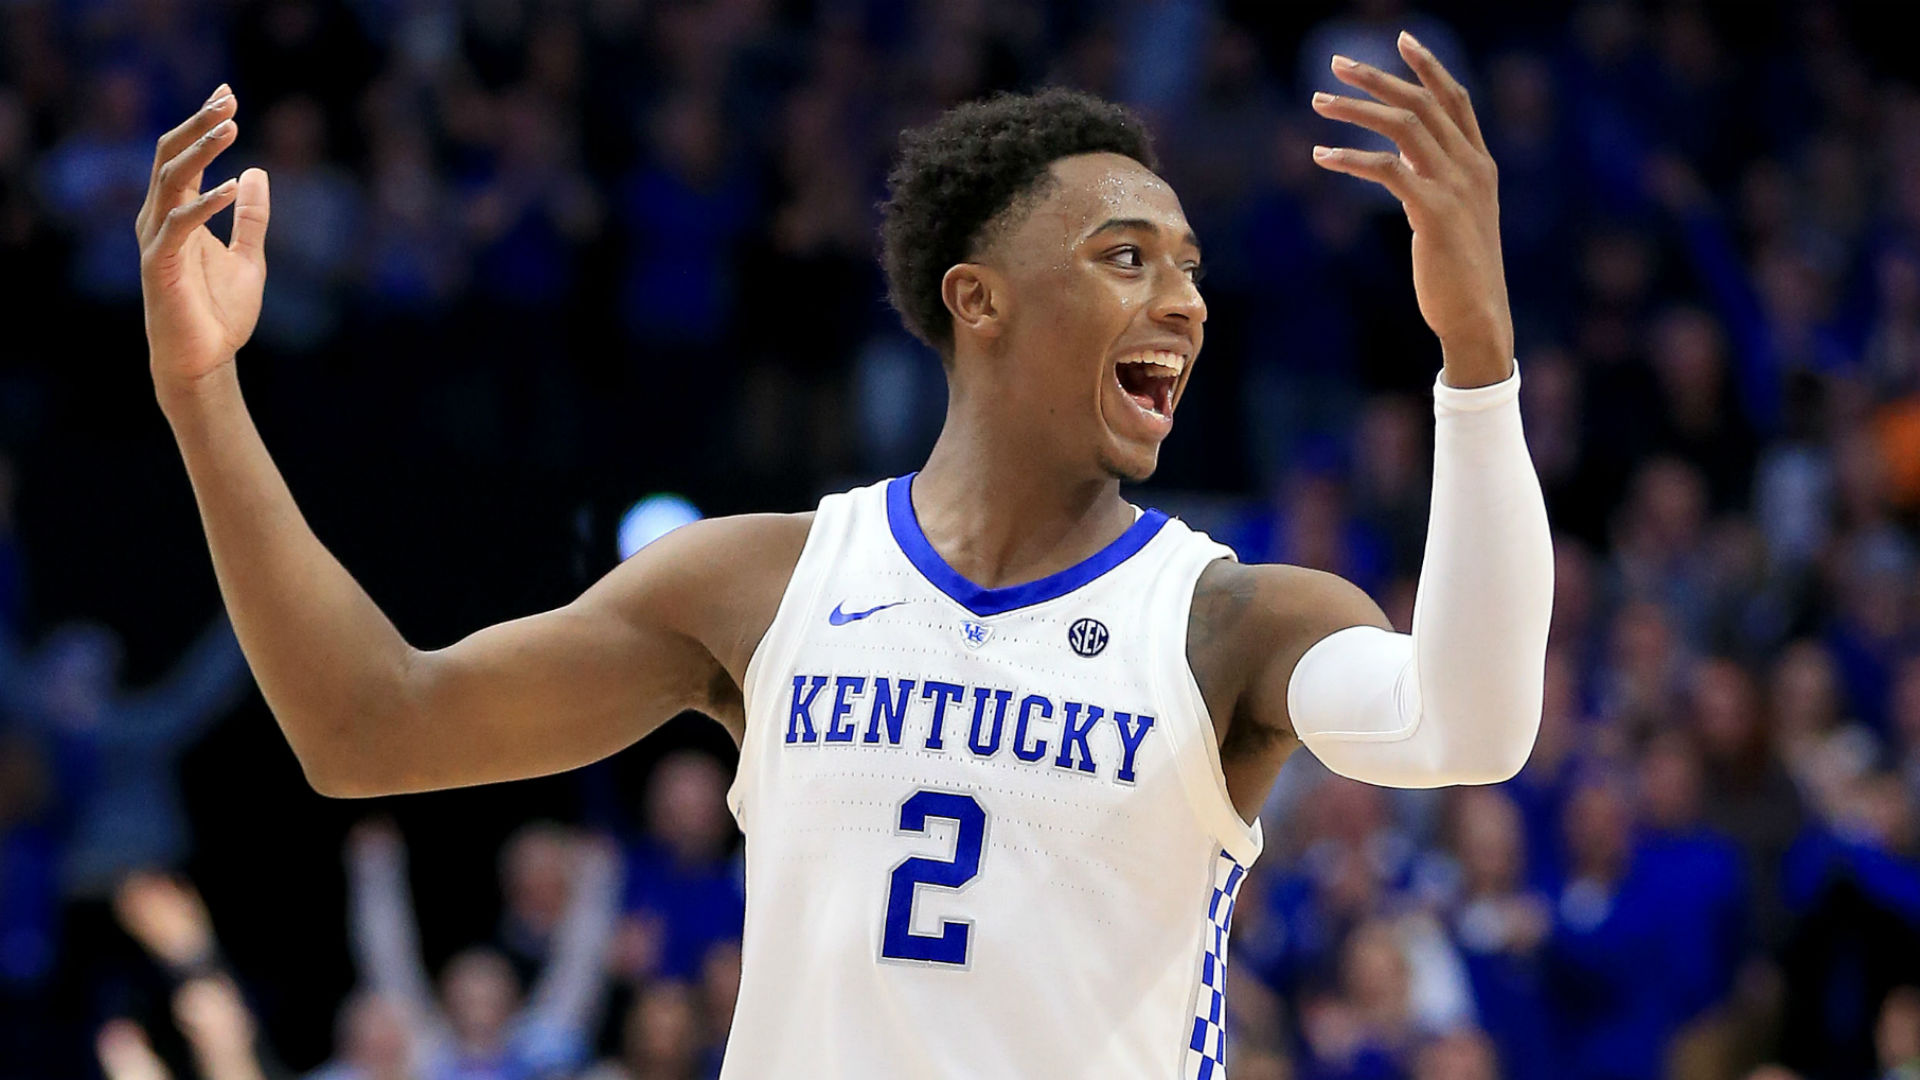 March Madness 2019 Bracket Projections: Kentucky Set Up